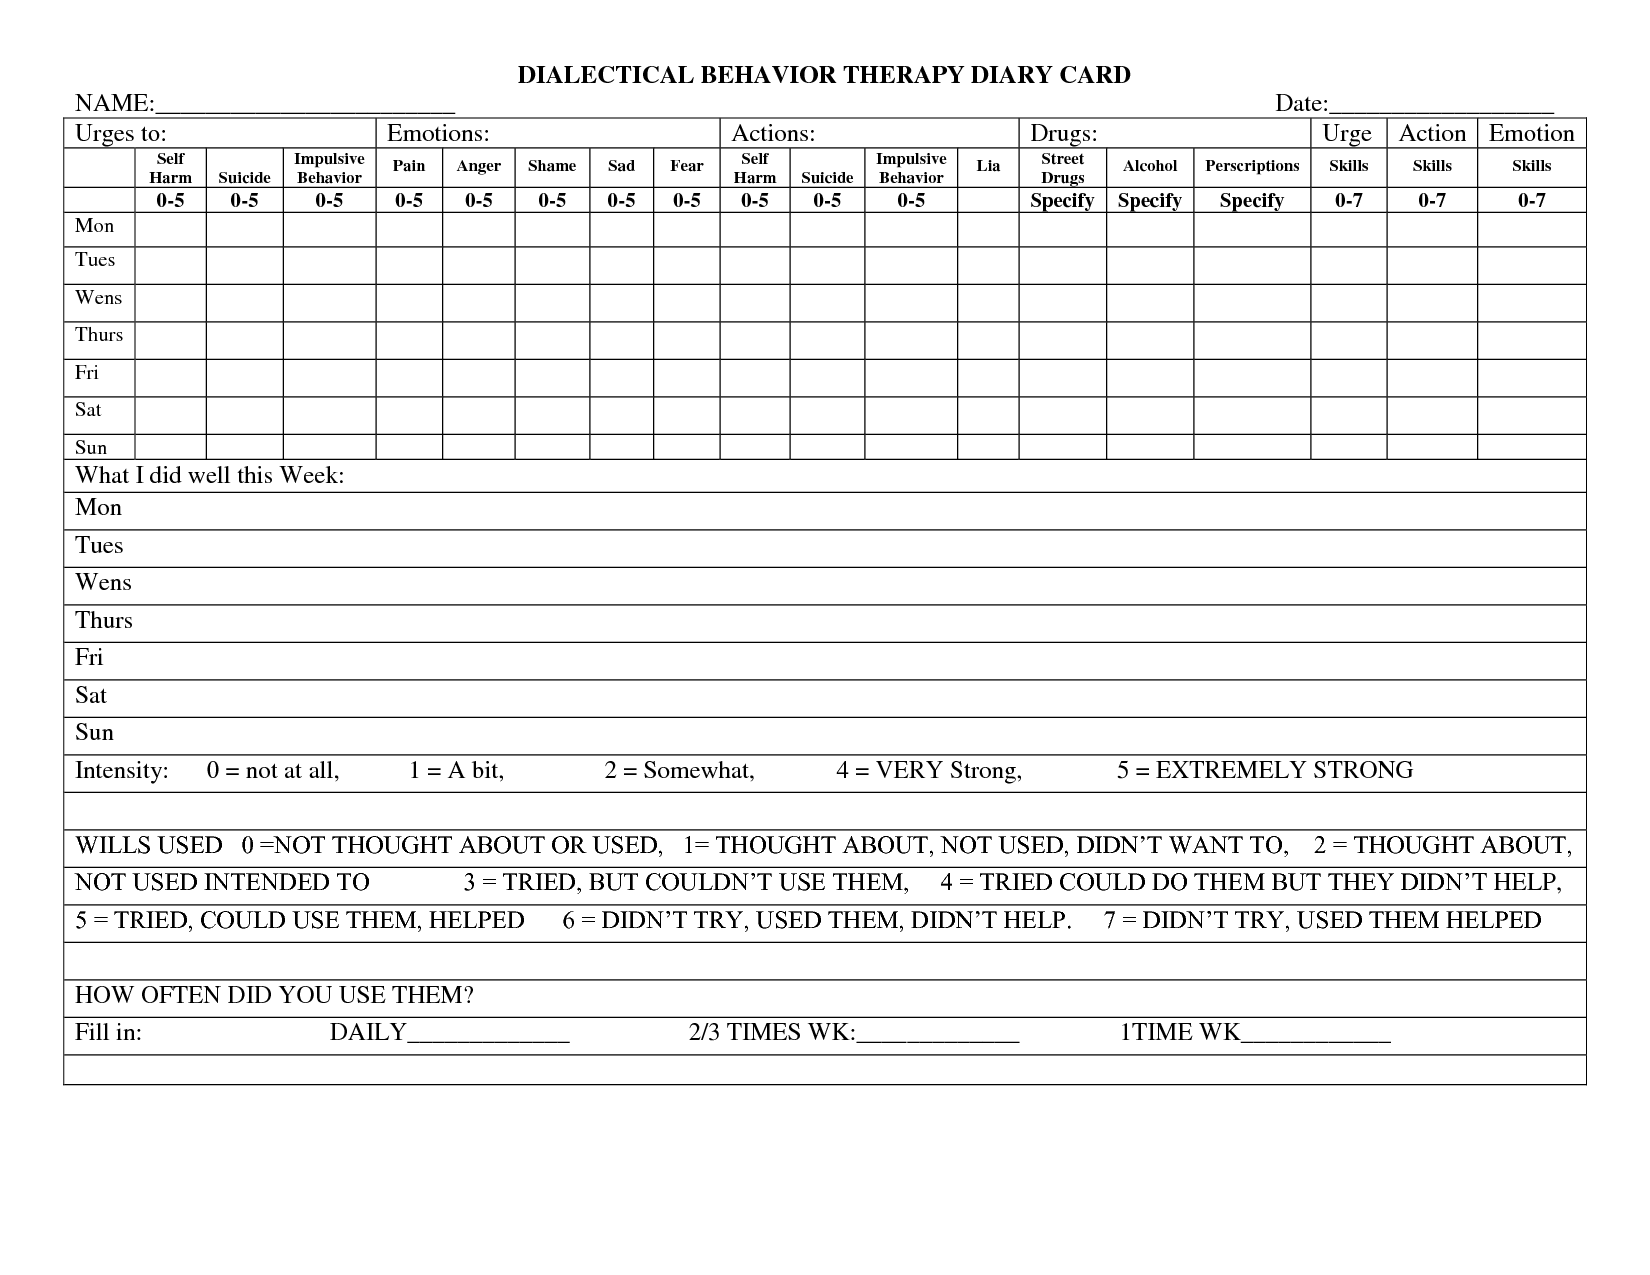 Uncategorized Dialectical Behavior Therapy Worksheets dialectical behavior therapy diary card counseling pinterest worksheet is women mental health see more therapy